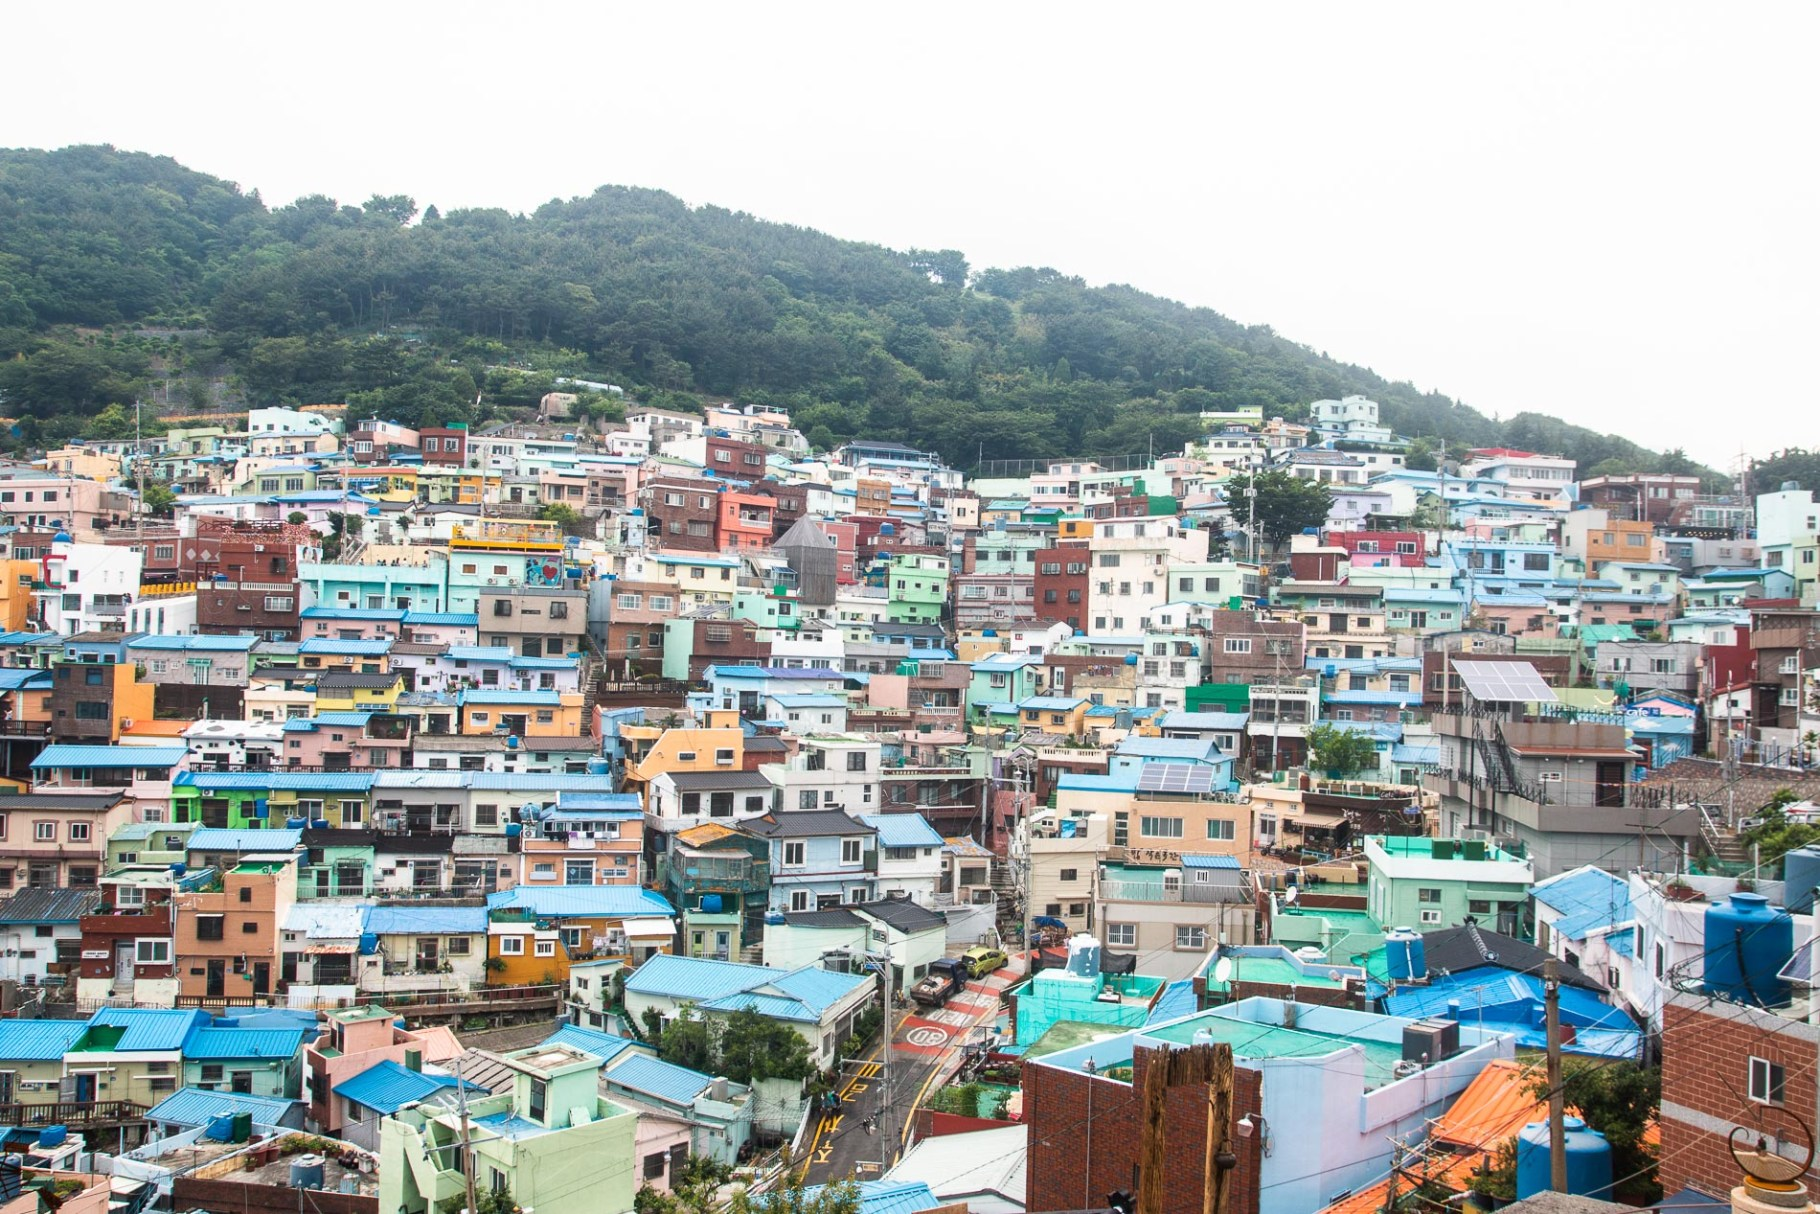 Day 2 in Busan: Gamcheon village, Taejongdae and BIFF square